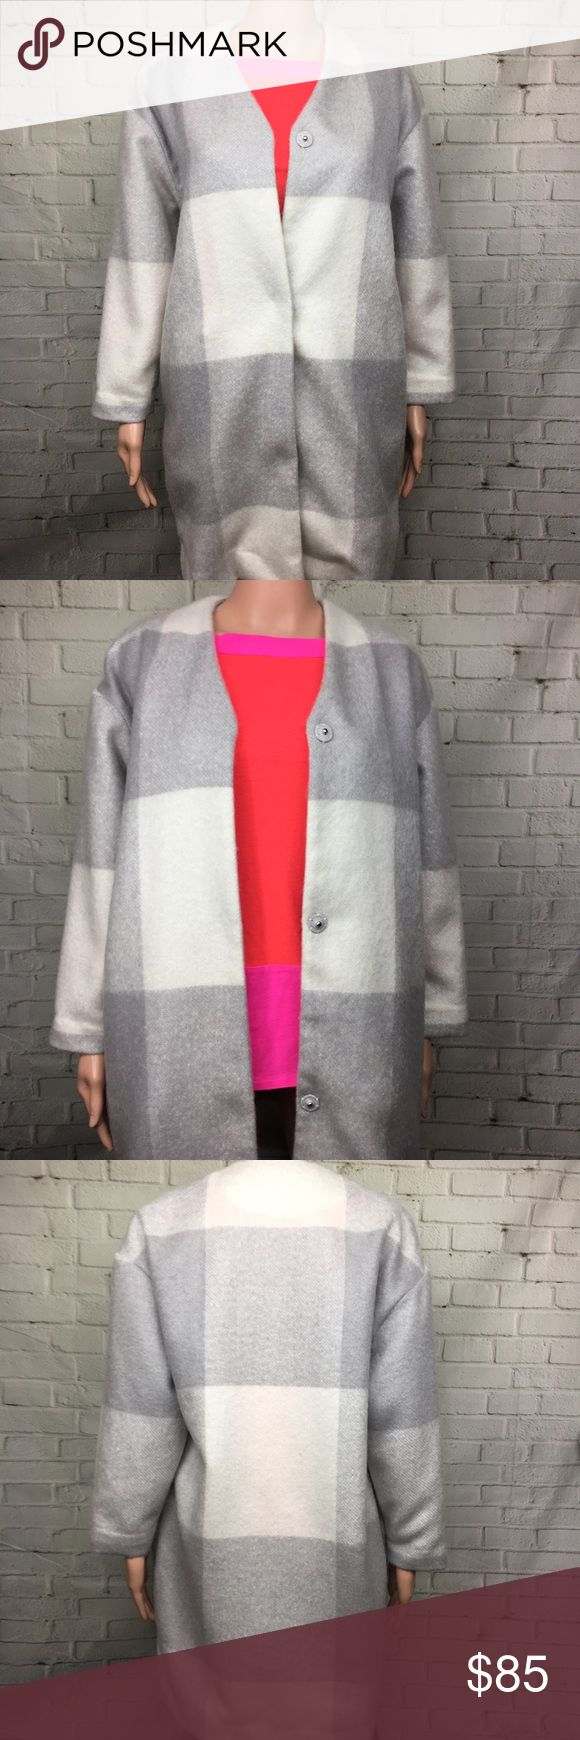 ADAP LIPPES Long Jacket Cardigan Stunning structured design! Love the timeless grey and white Geometric print. Only selling because it's a bit big on me. Small but fits more like a 6-8. Adam lippes for target adam lippes Jackets & Coats